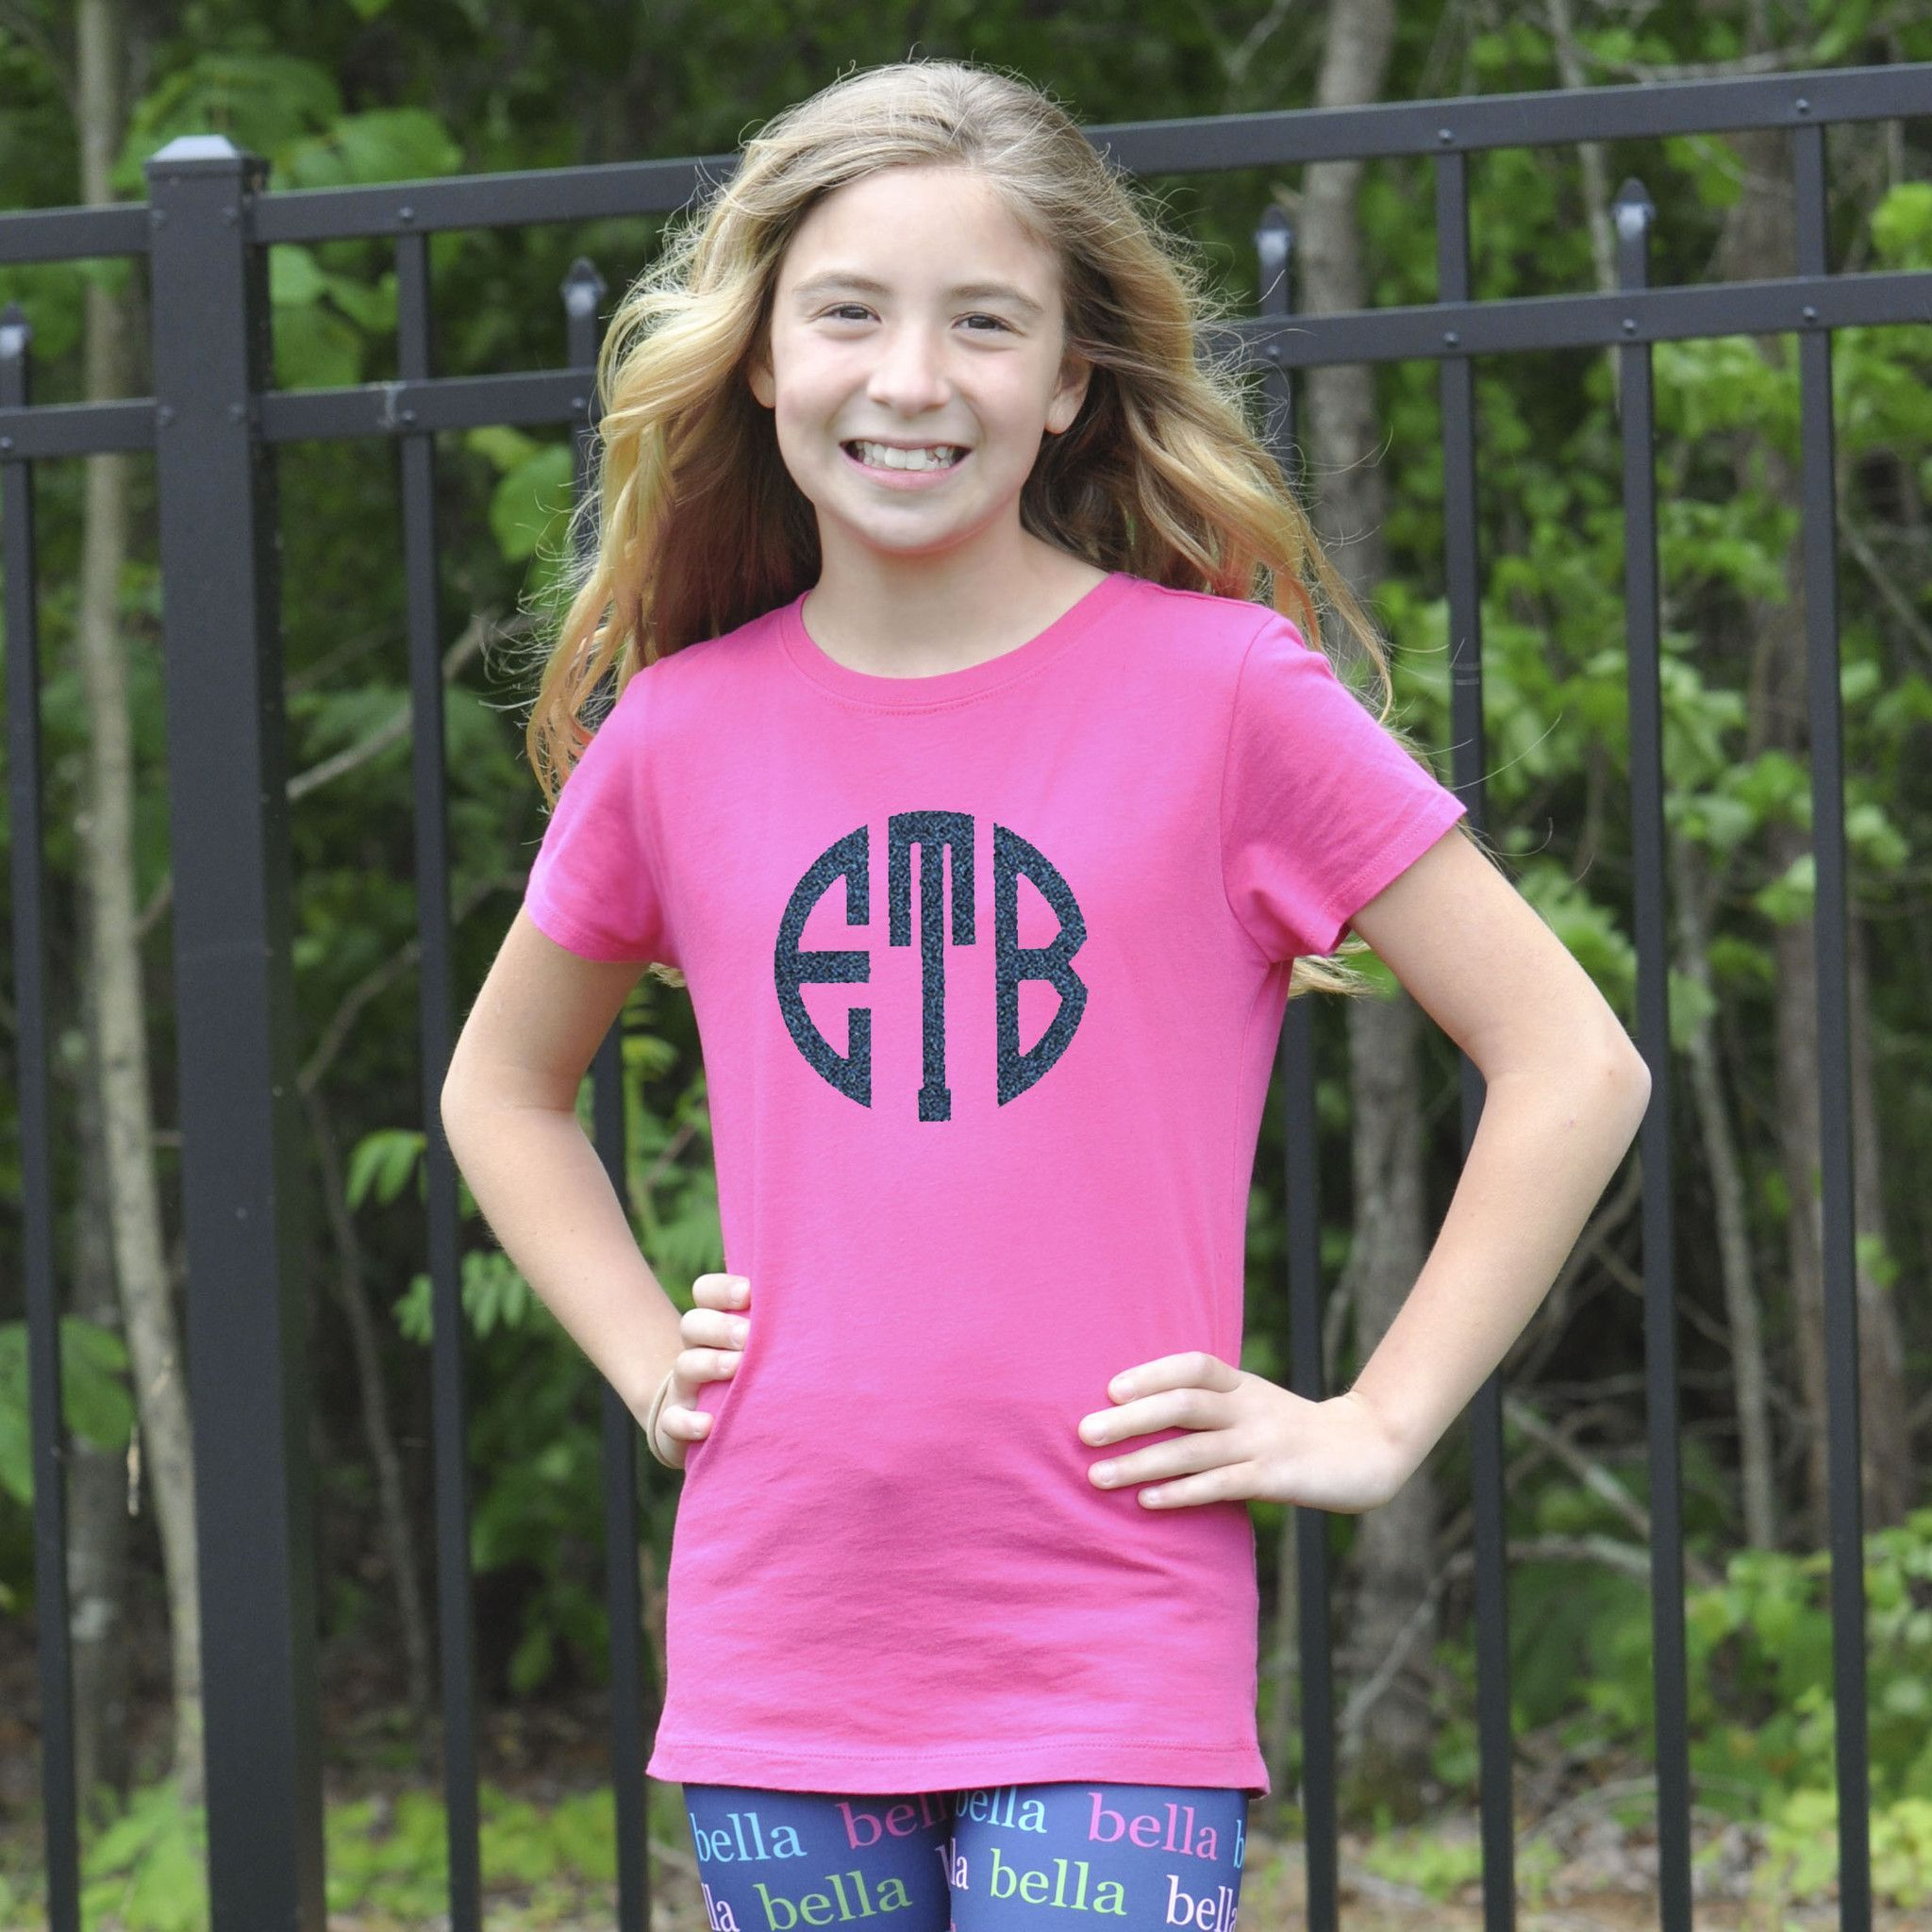 Design your own t-shirt hot pink - Girls Personalized Hot Pink Initials Tee You Design Your Look